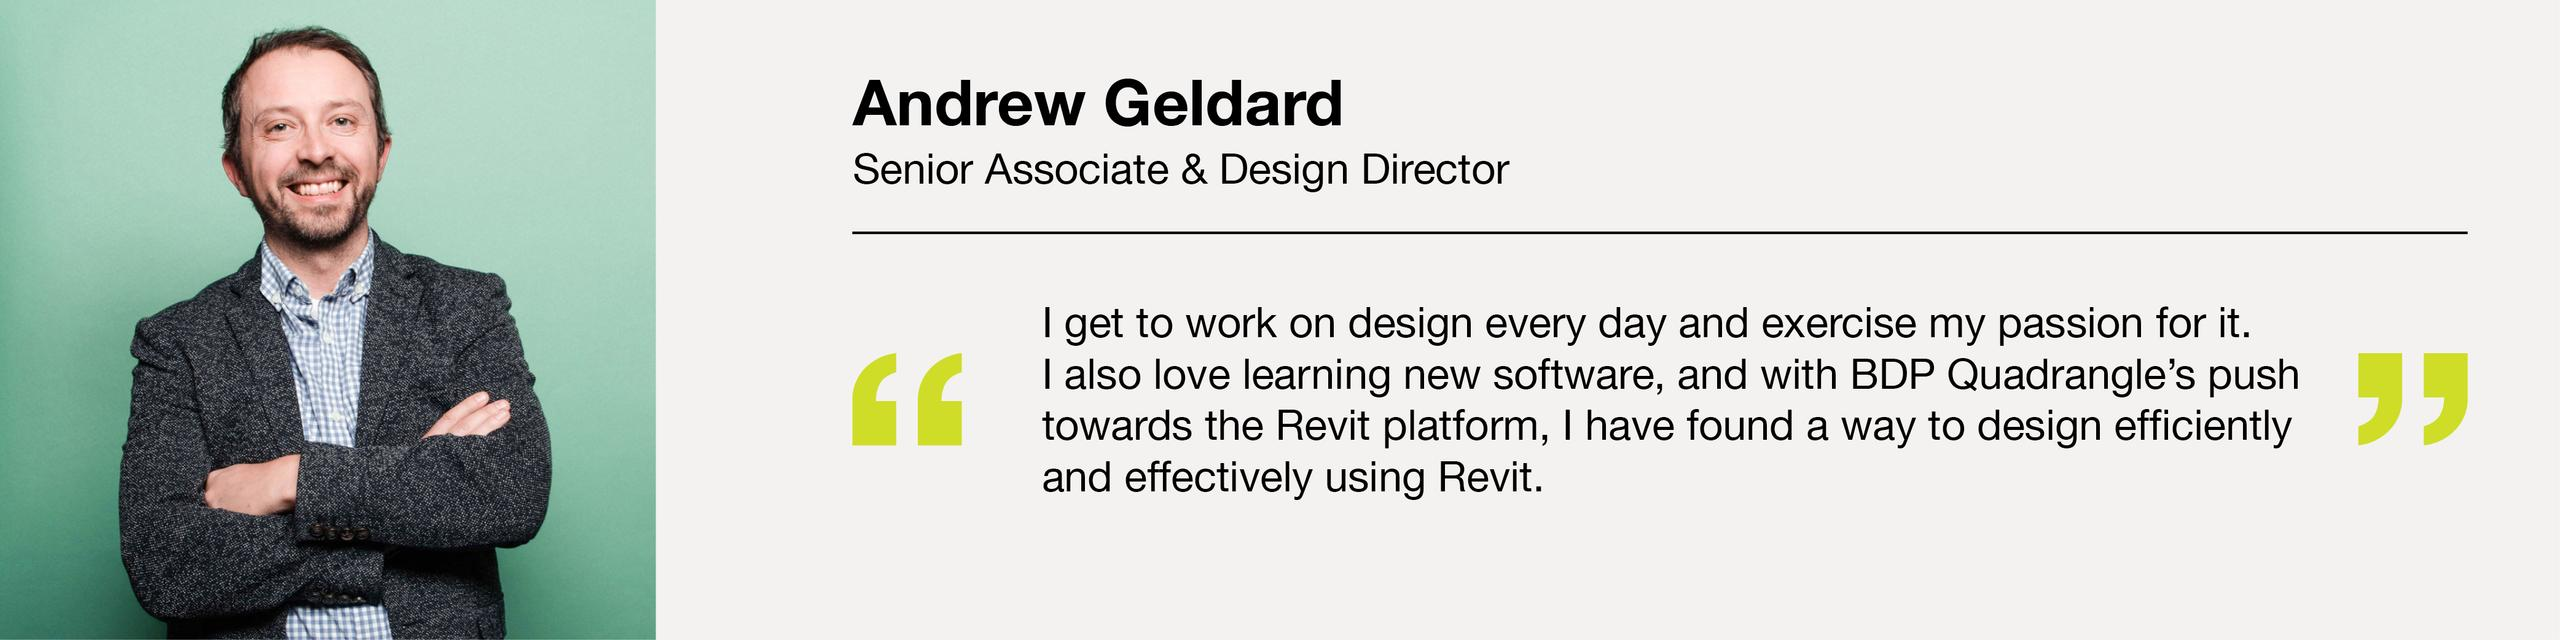 """Andrew Geldard Senior Associate and Design Director """"I get to work on design every day and exercise my passion for it."""""""